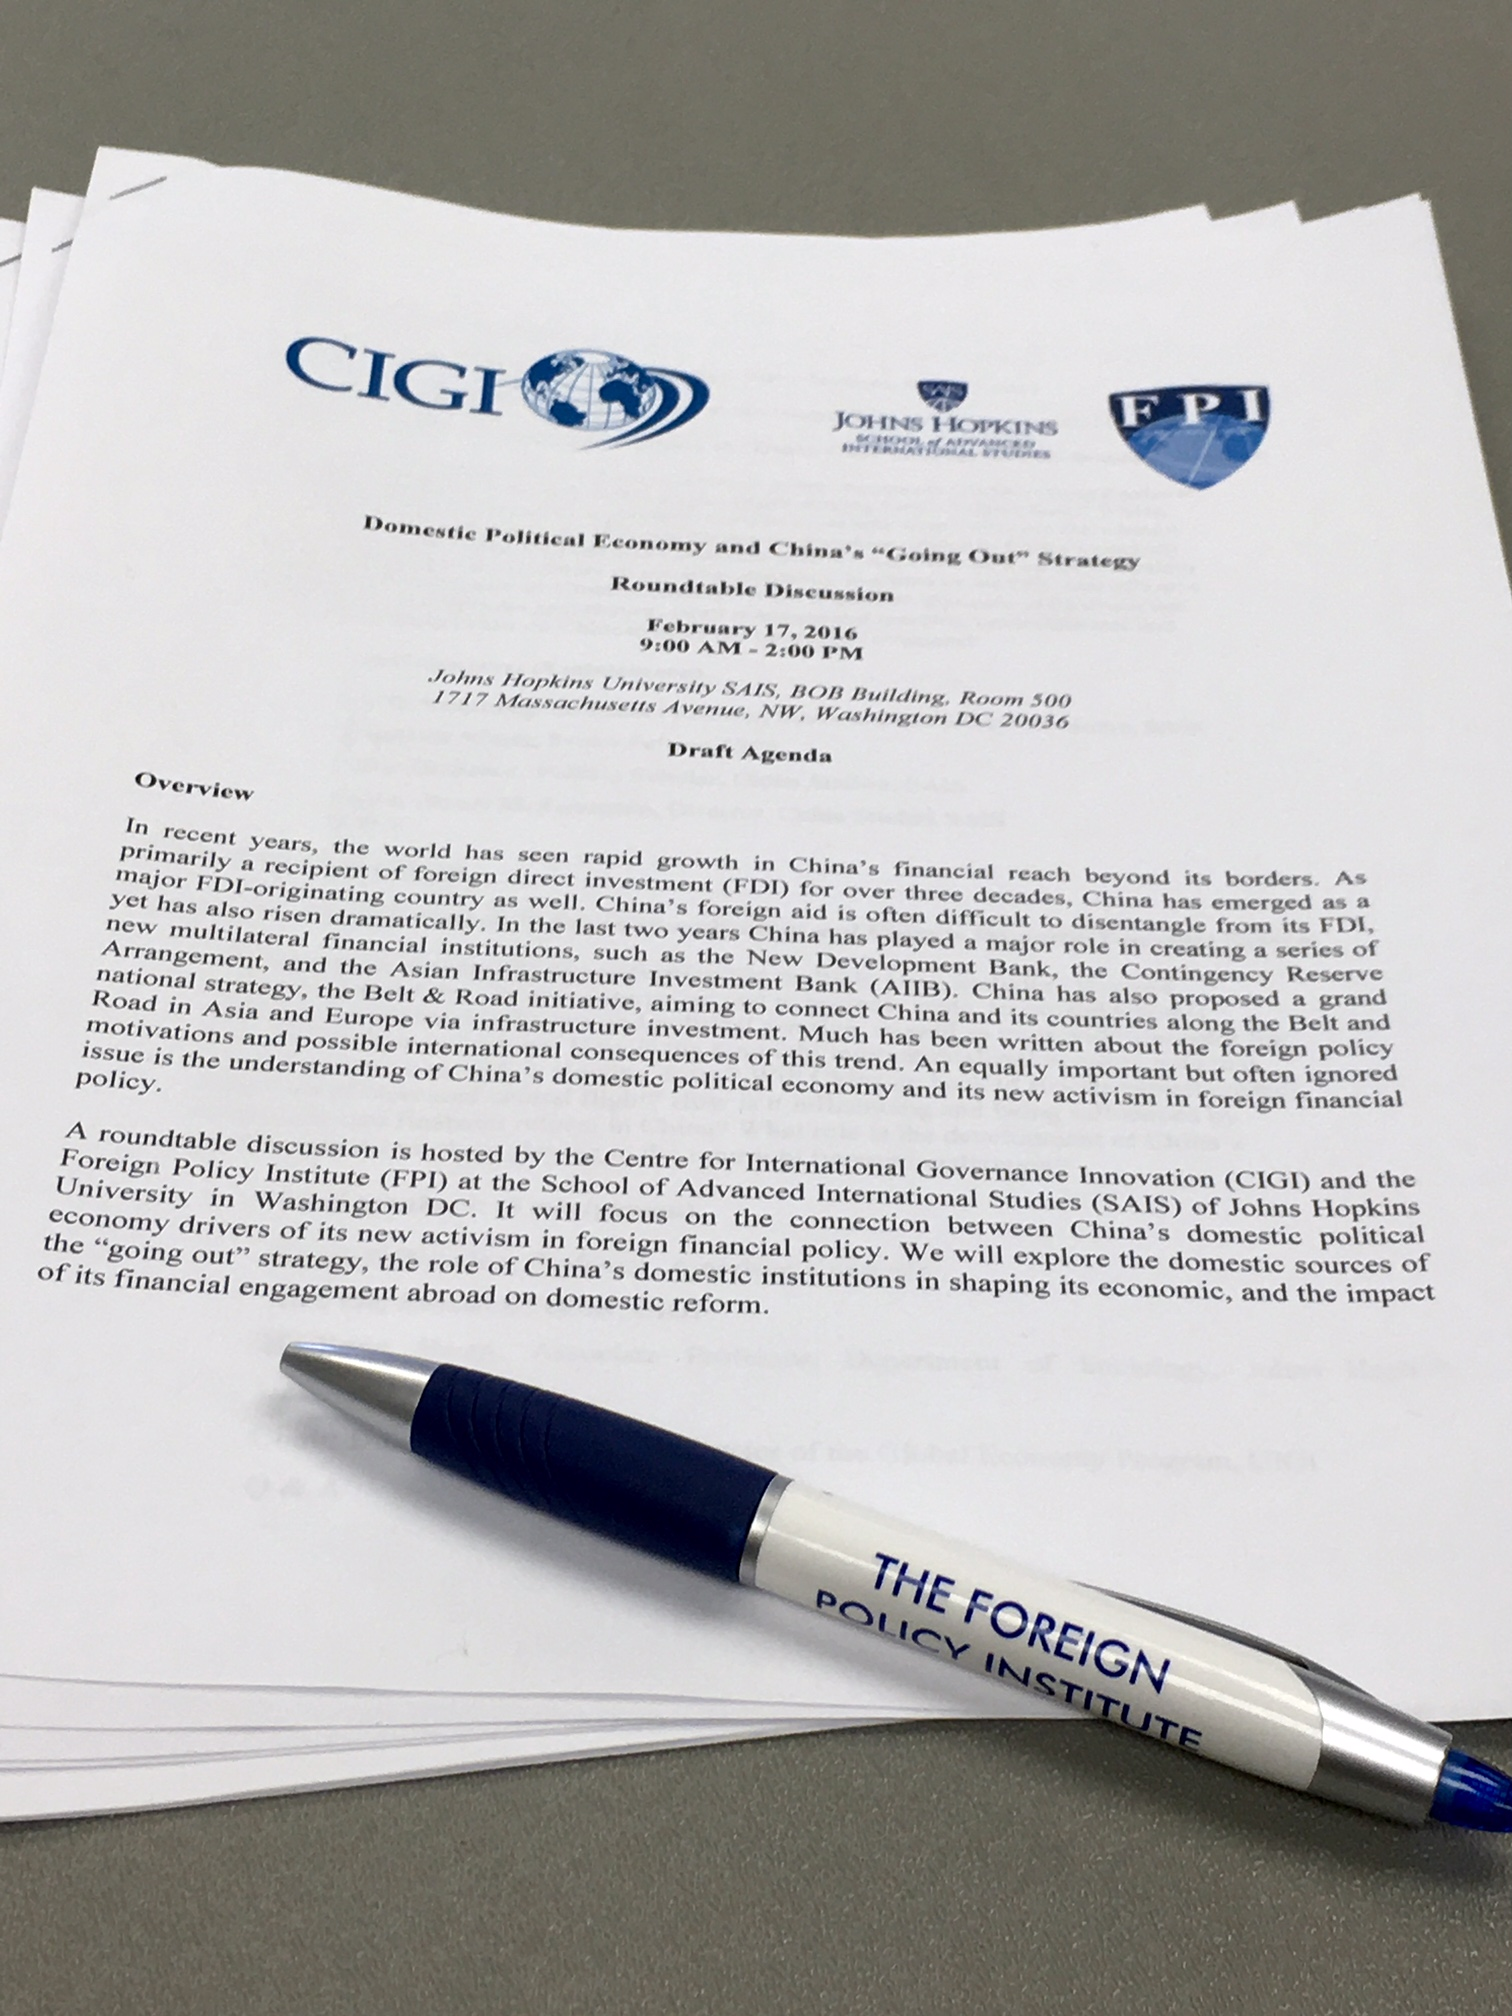 CIGI and FPI Roundtable